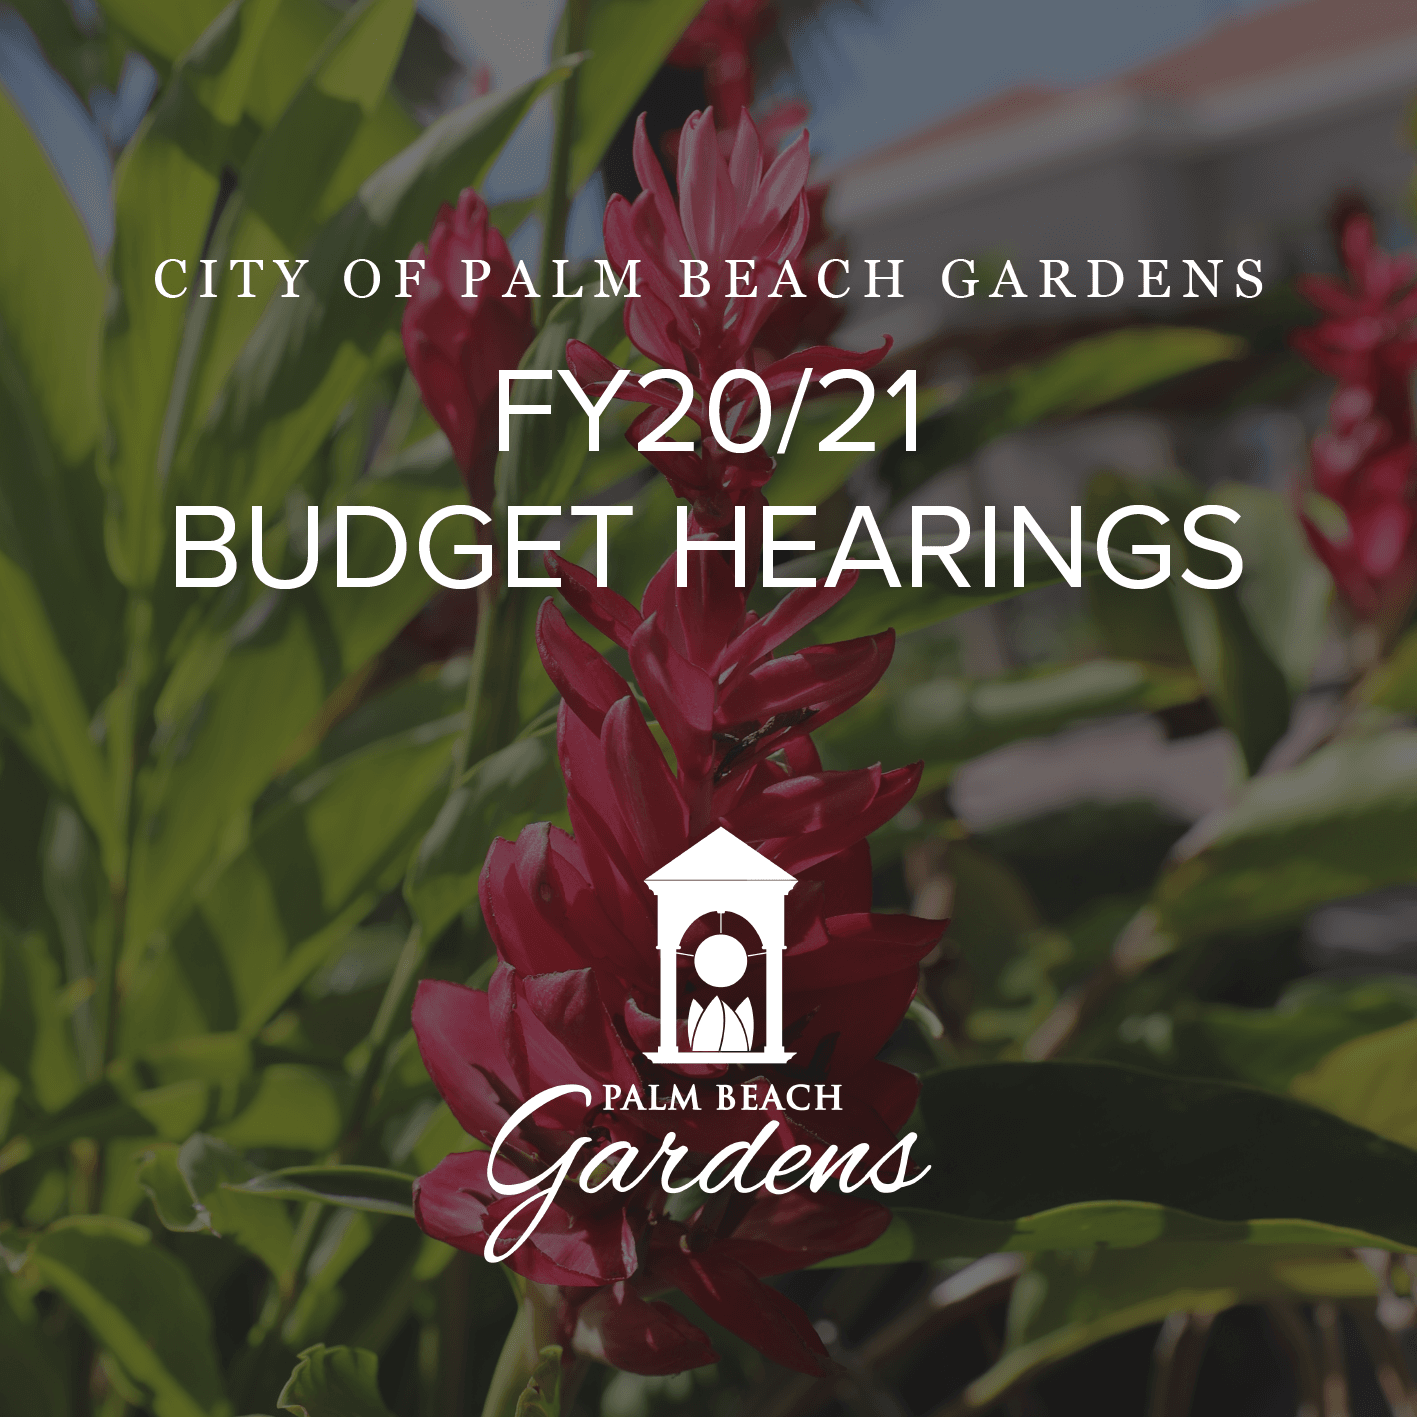 Fiscal Year 2020-2021 Budget Hearings for the City of Palm Beach Gardens.